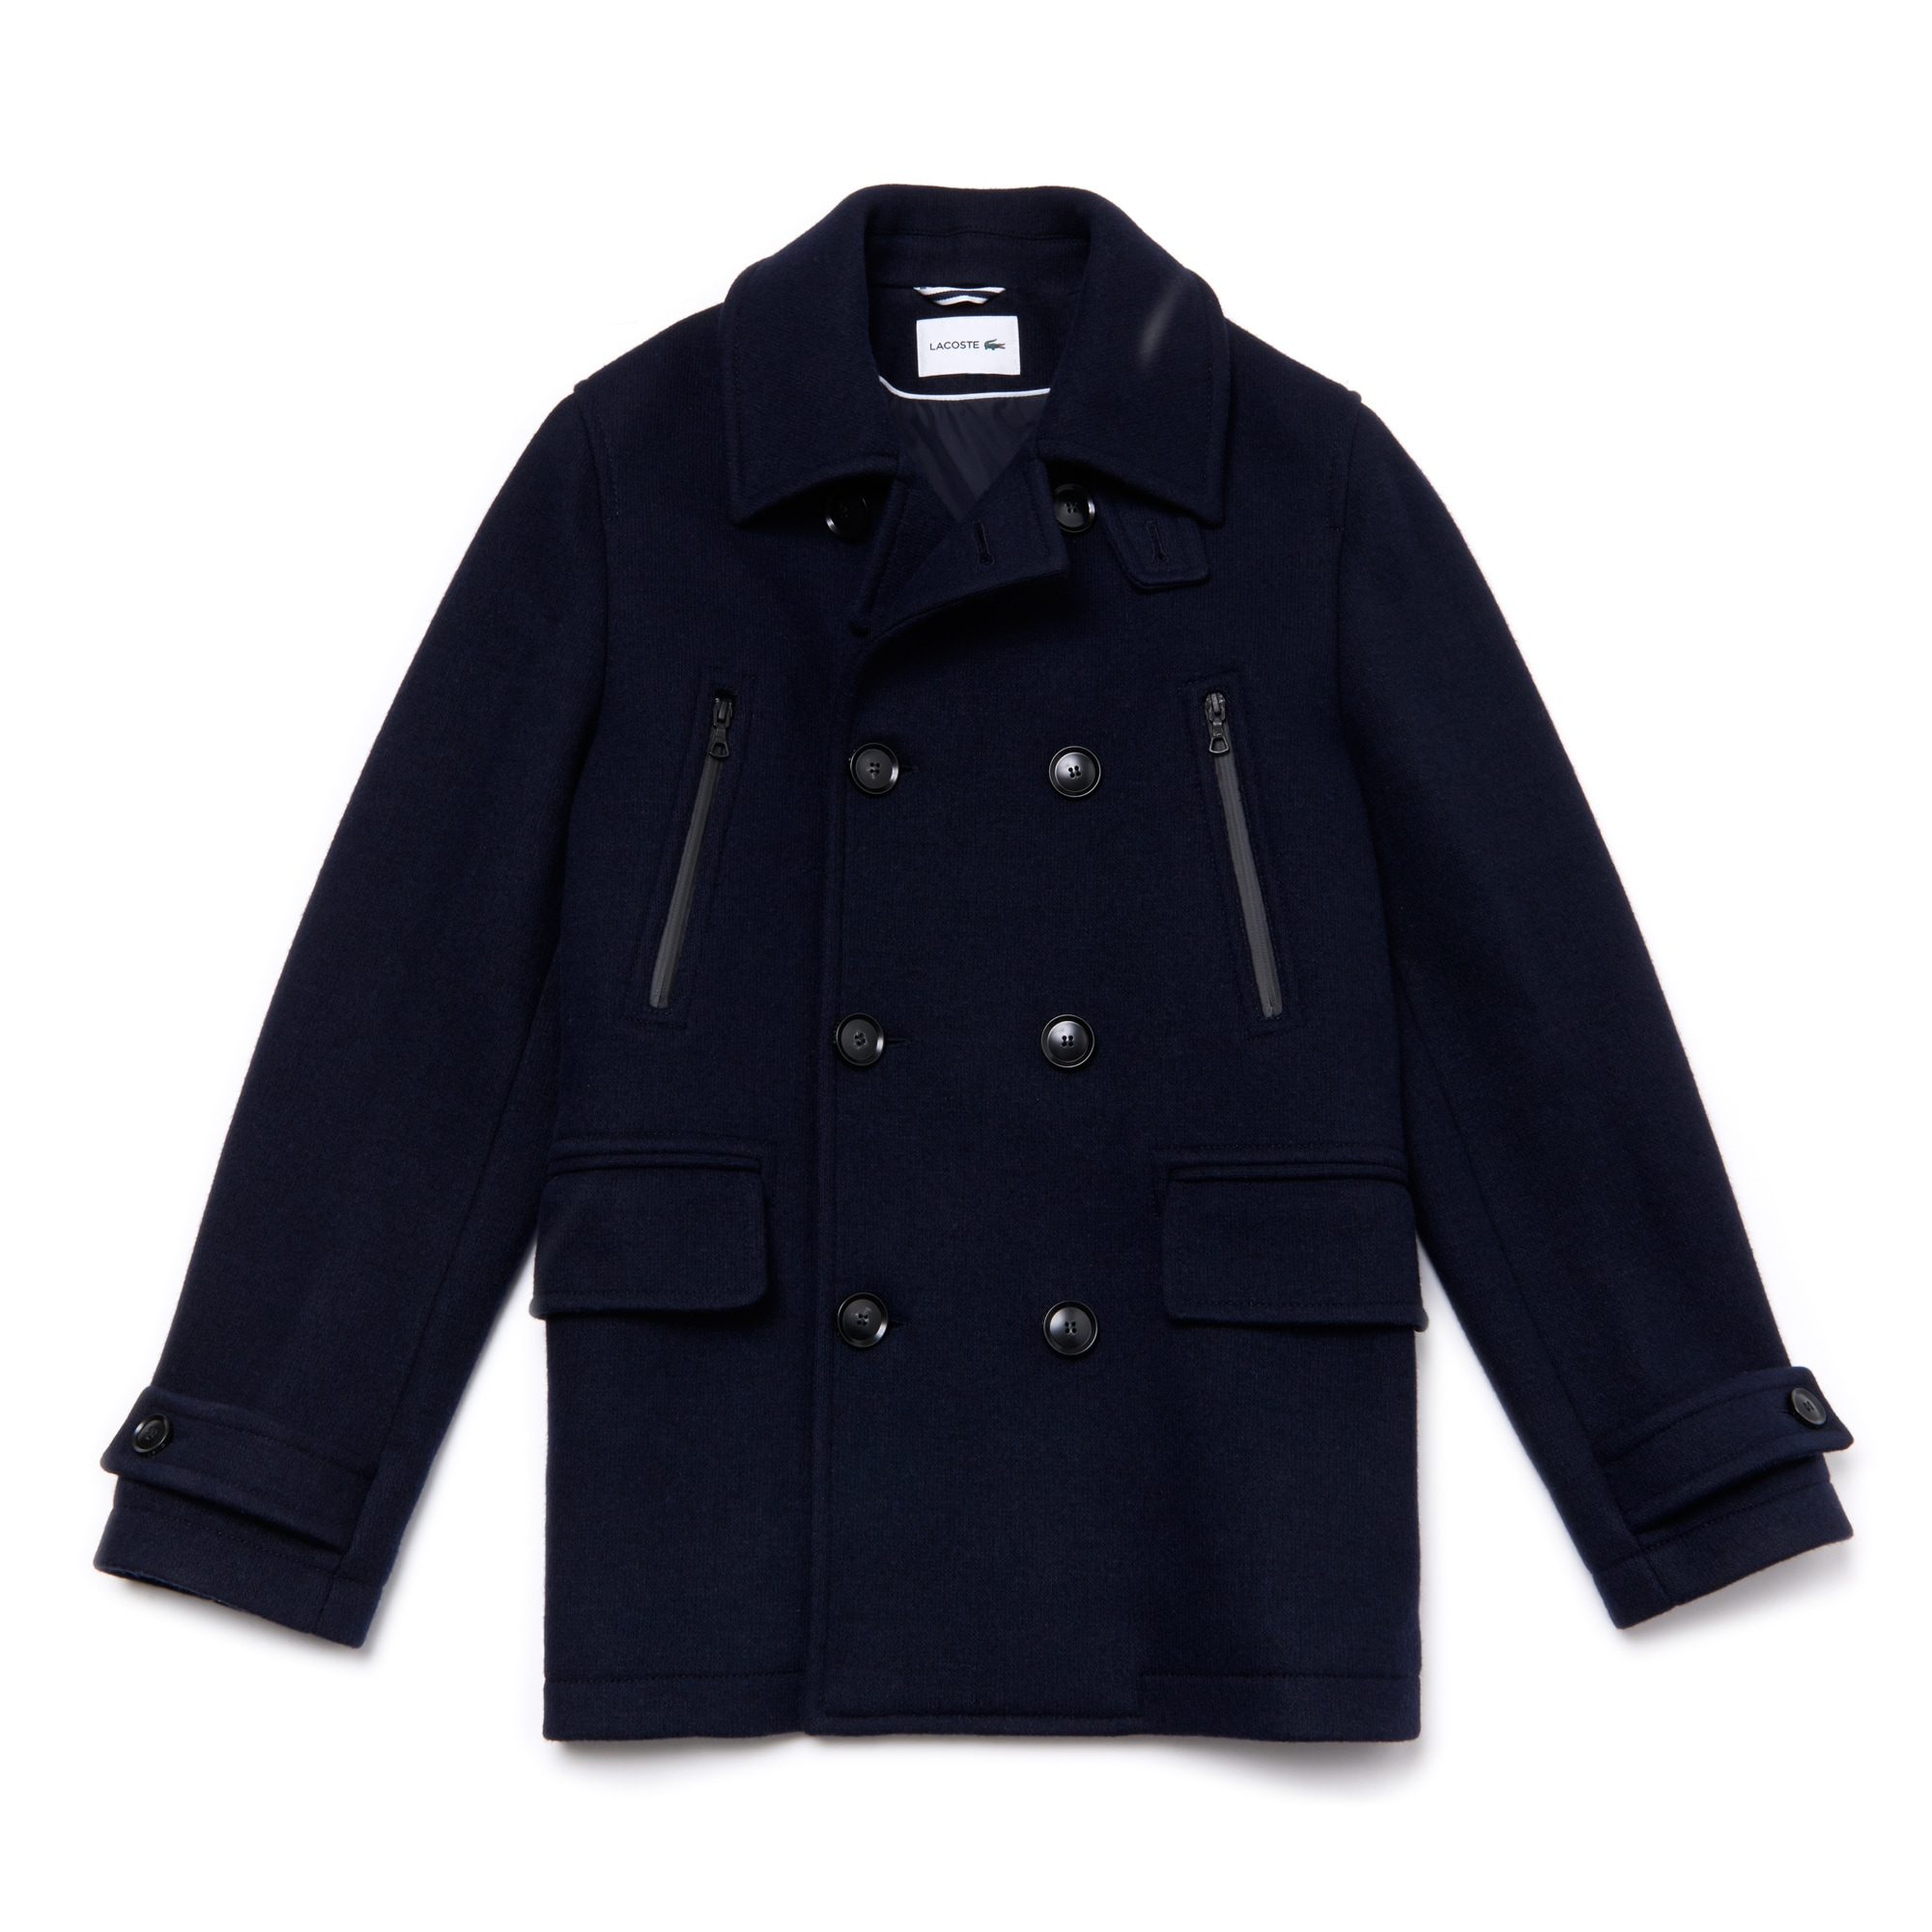 Men's Mid-Length Wool Jersey Pea Coat